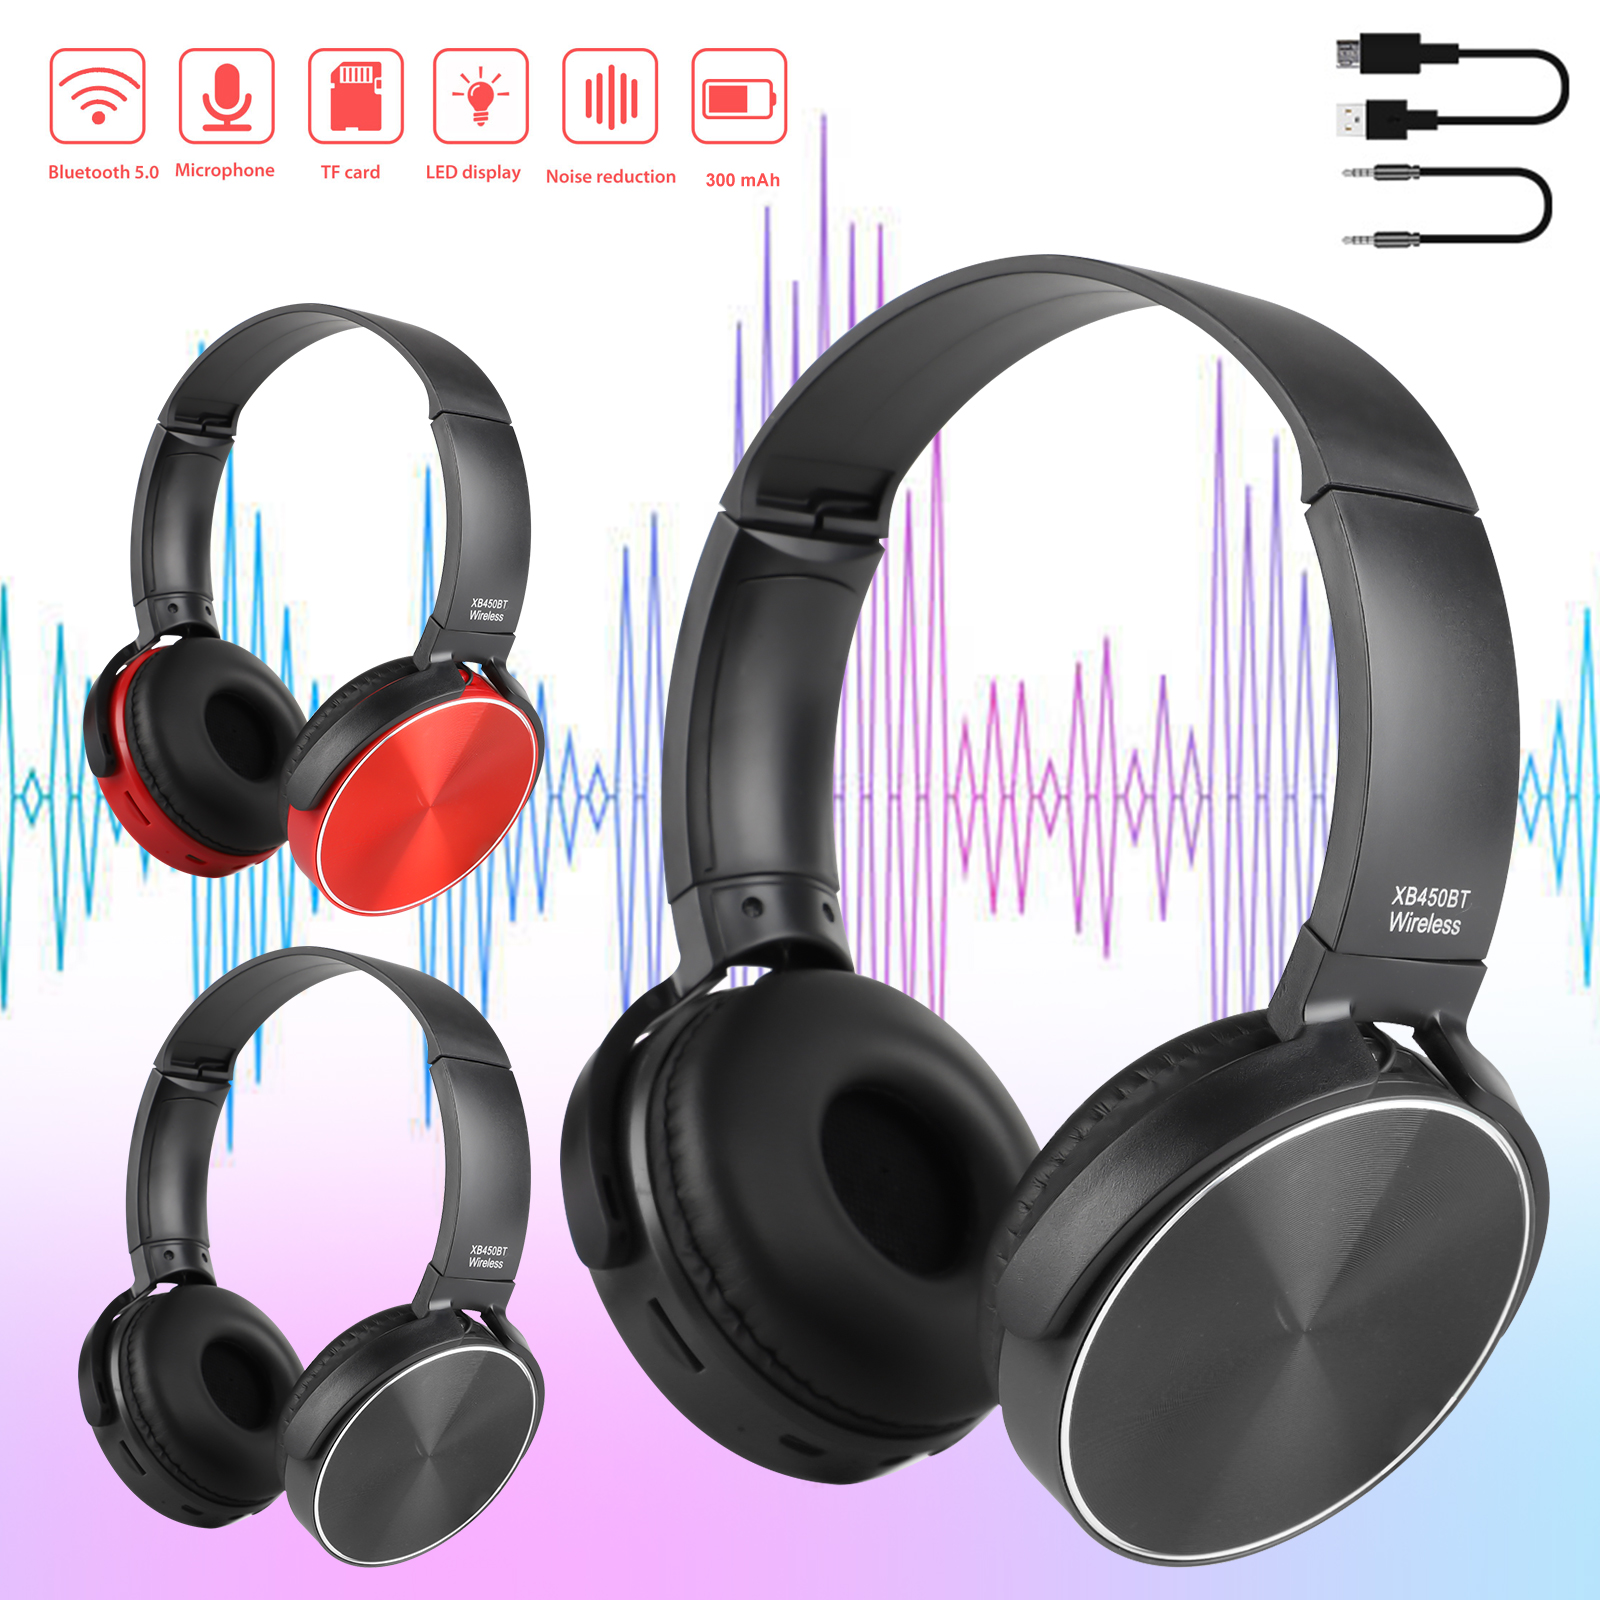 Bluetooth 5.0 Wireless Headphones, Noise Cancelling Over